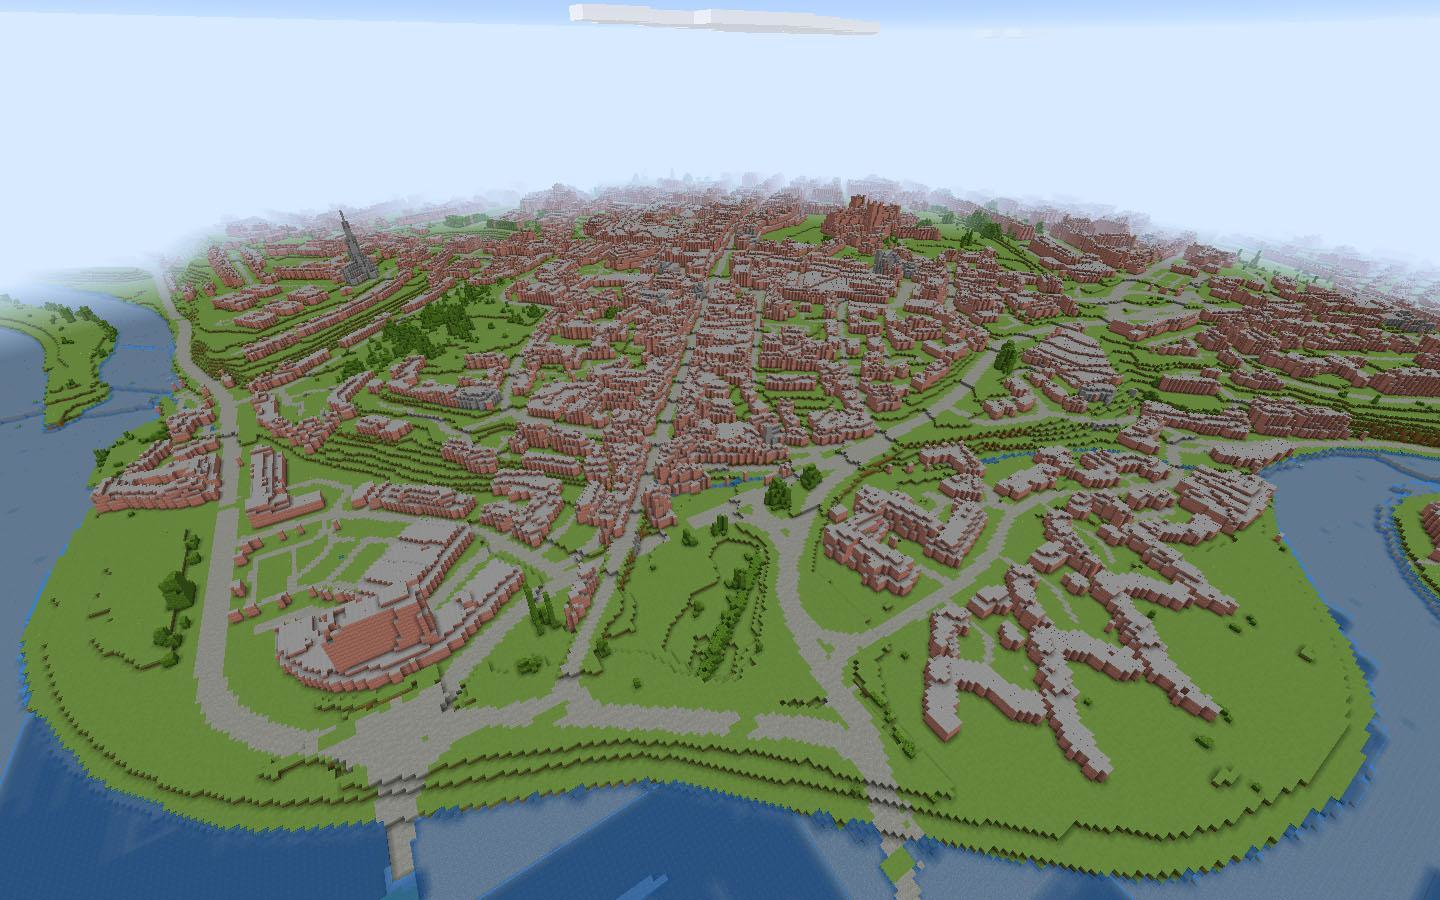 Exeter CityIt features a series of challenge areas to inspire creative thinking about the problems the city faces and offers the Minecraft map for people to test out solutions on.